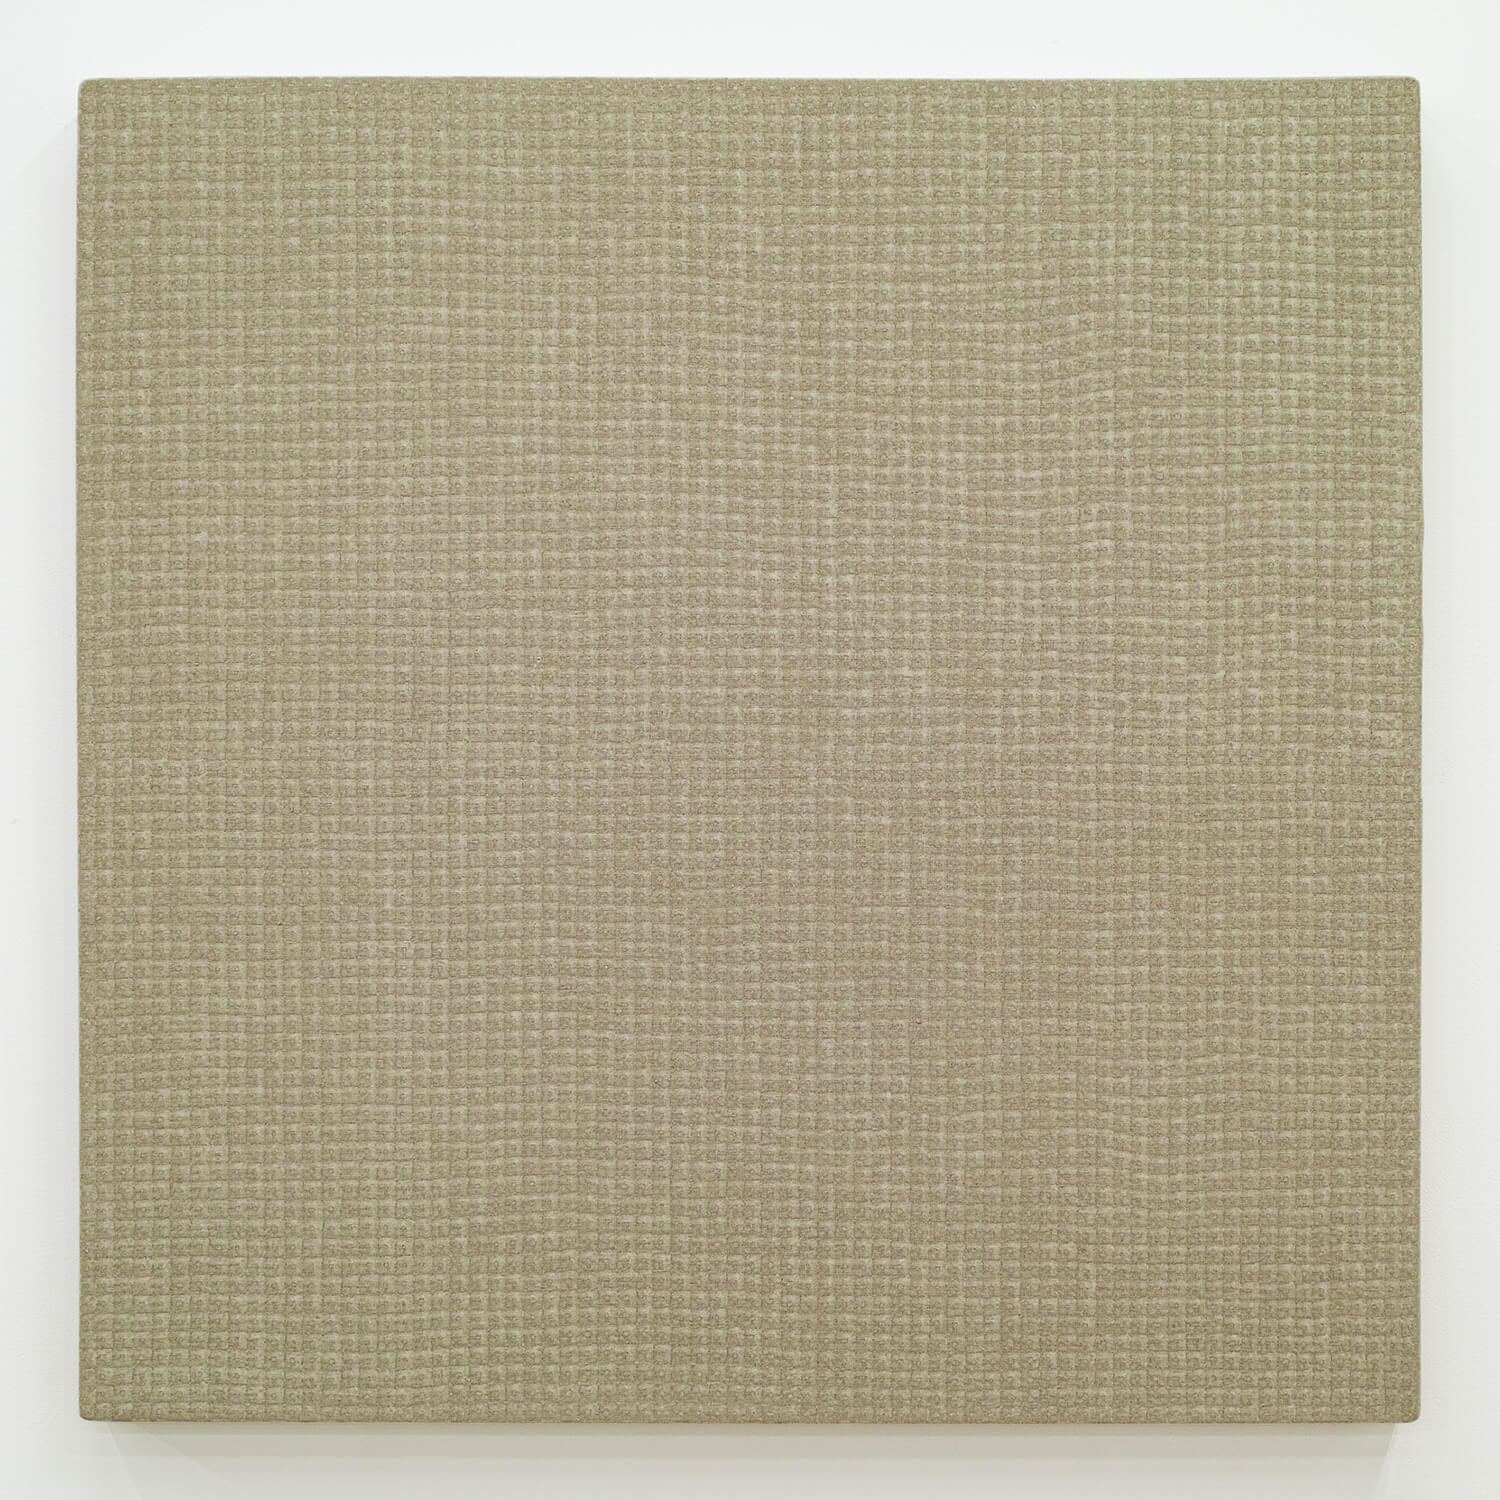 Hemp-square 09-1|Acylic on canvas 72.5 x 72.5 cm|2009